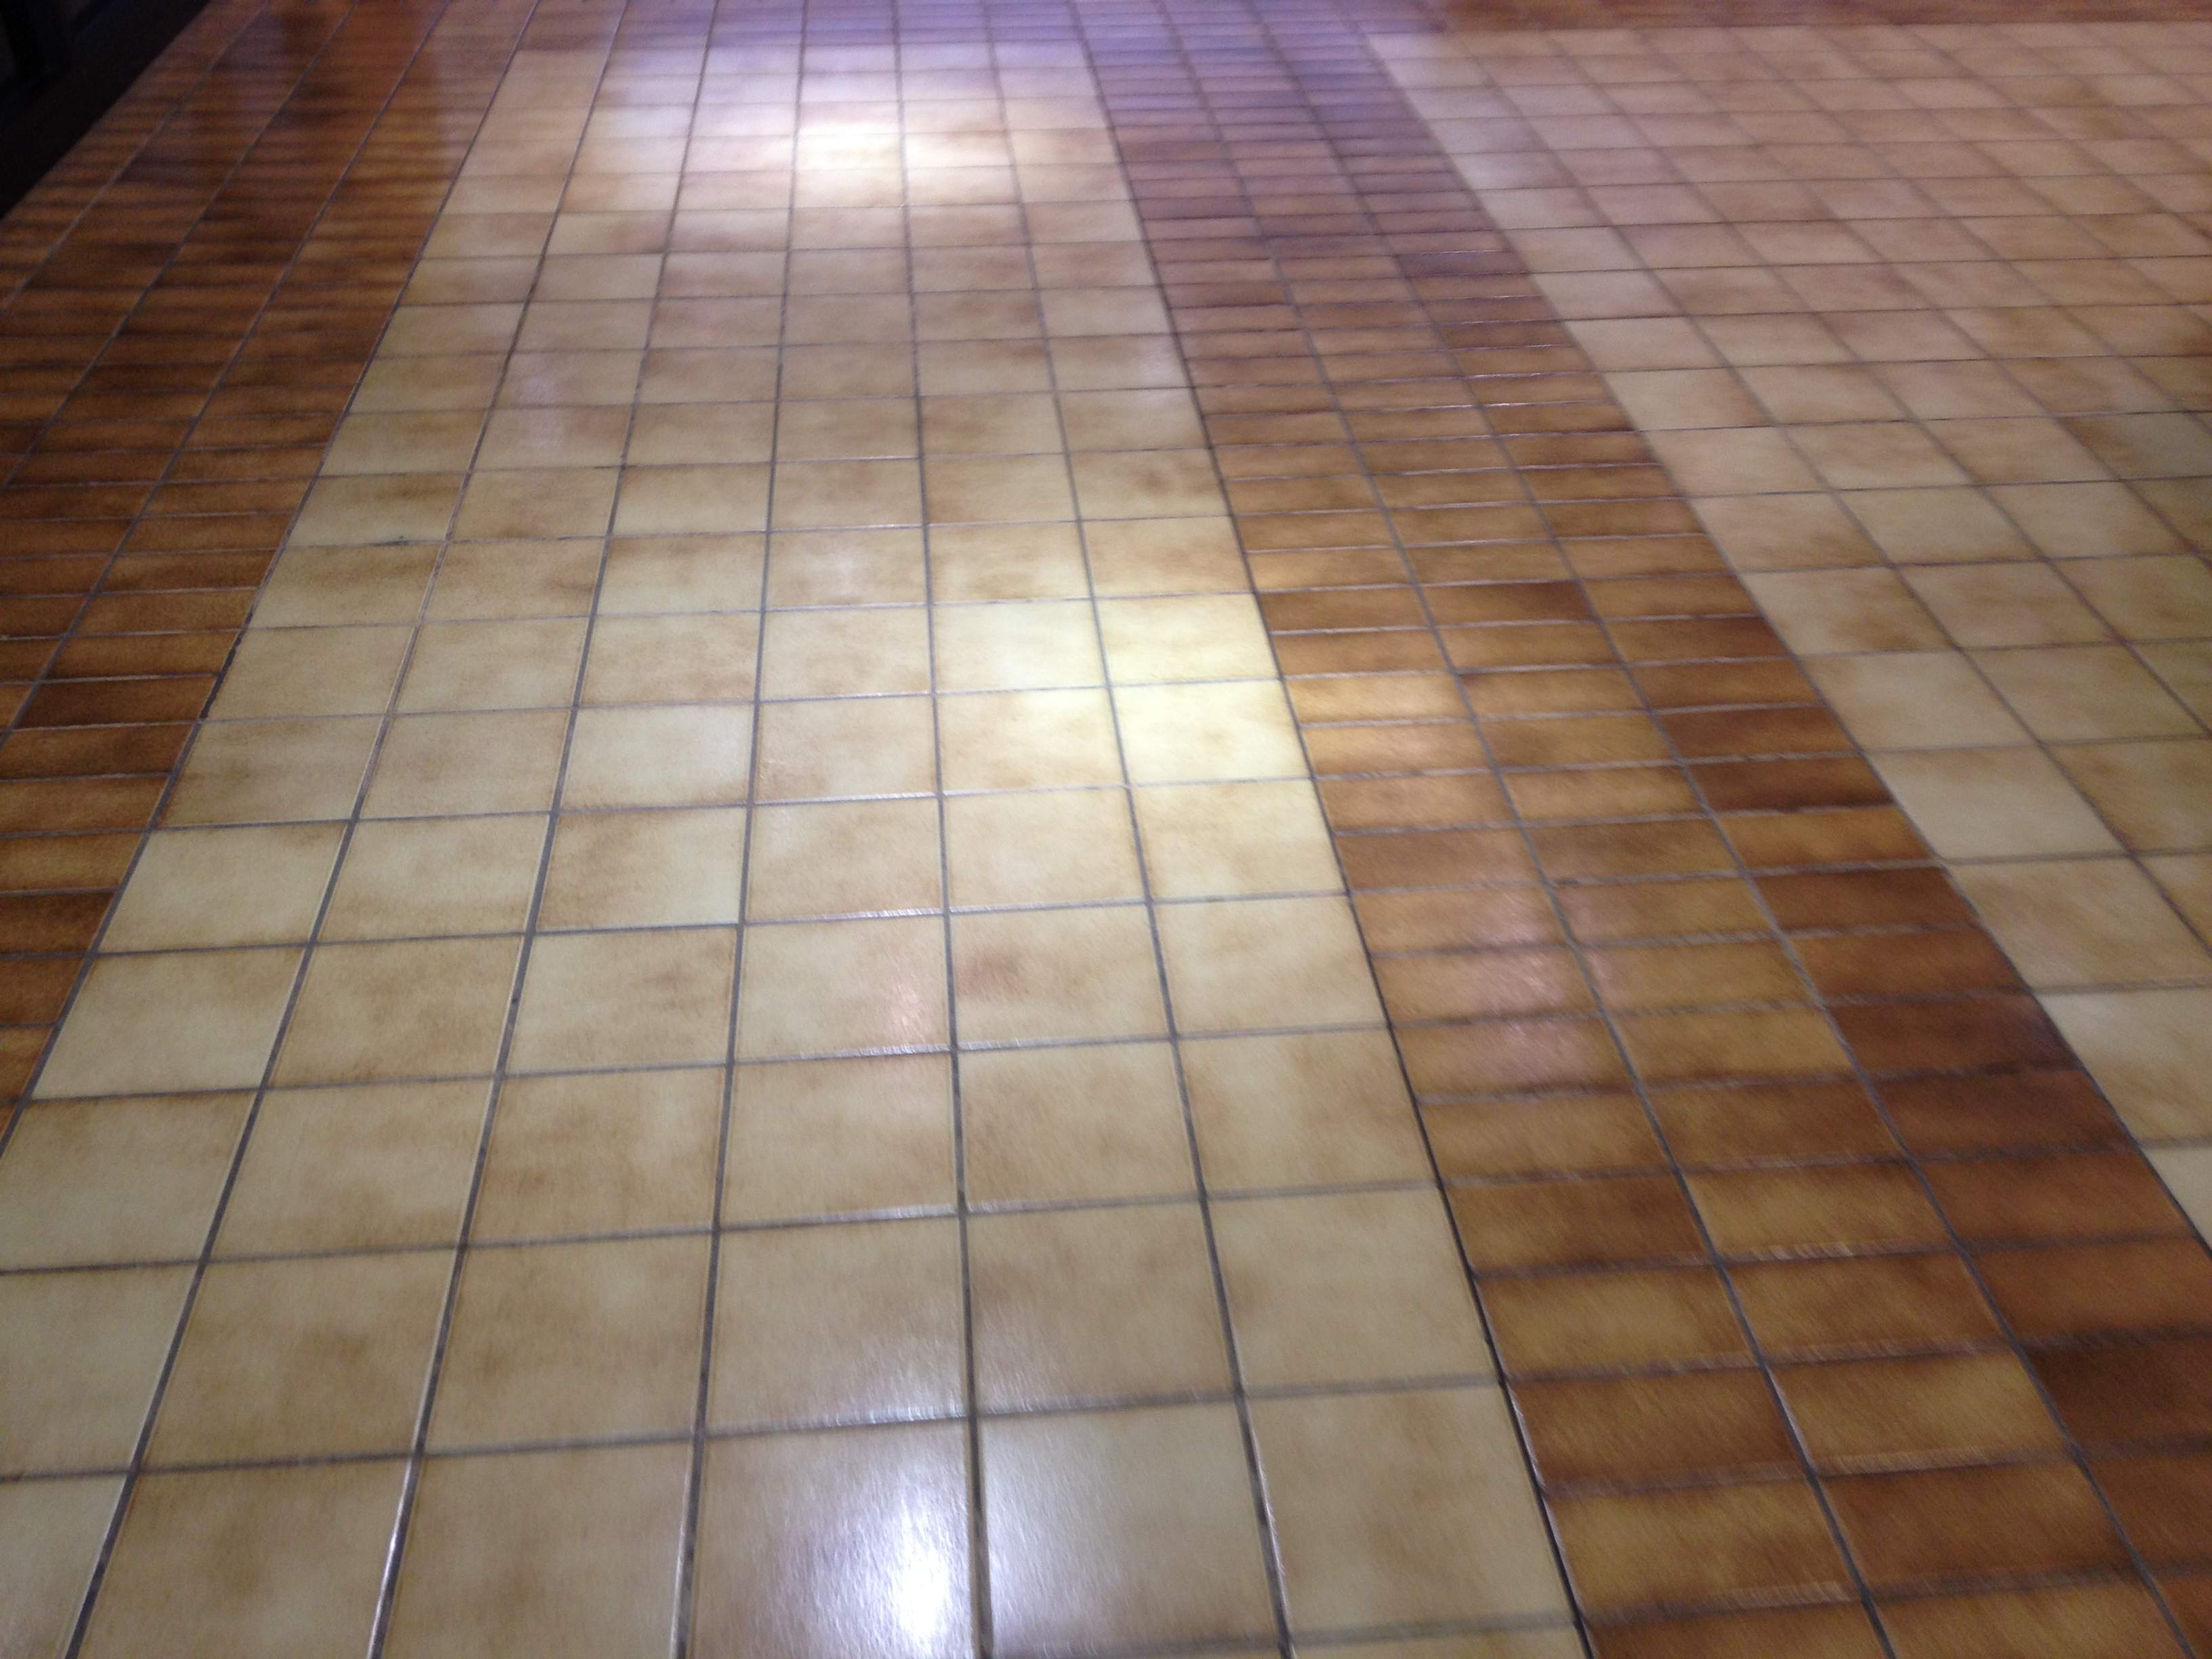 FileCool Floor Tiles - Piedmont Mall Danville VA (7377709480).jpg - Wikimedia Commons